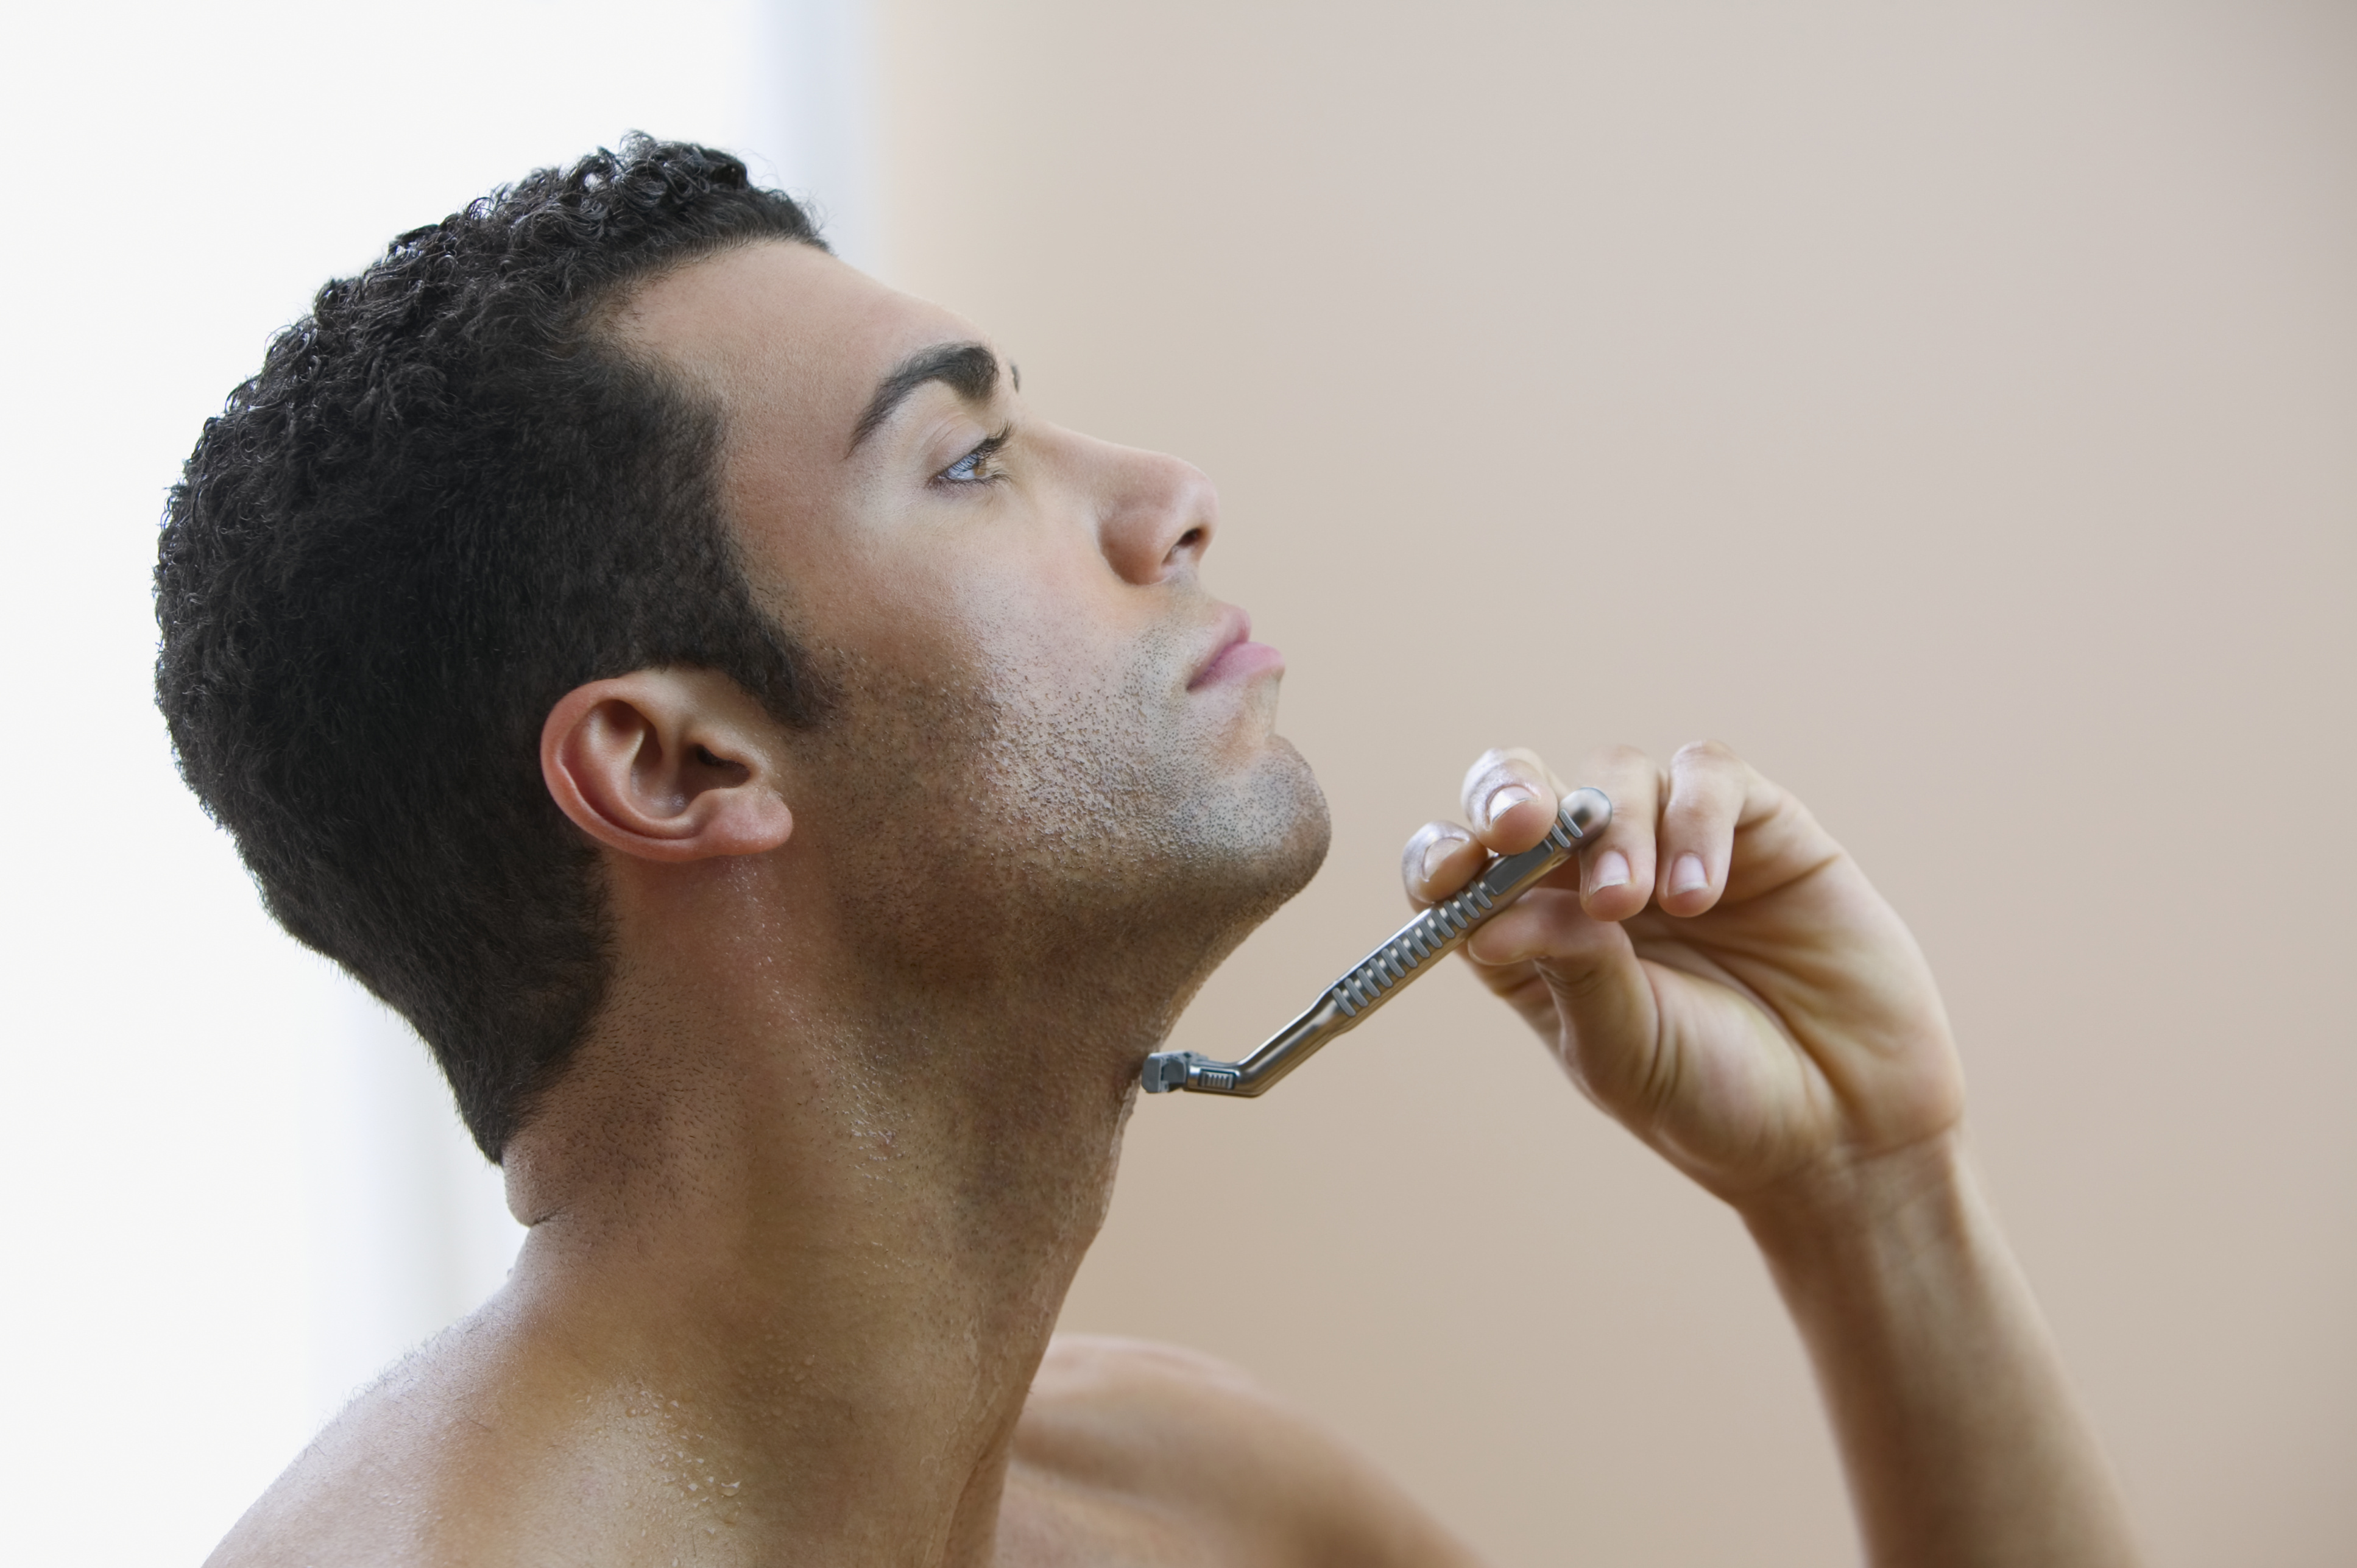 How To Get Rid Of Unsightly Razor Bumps In The Neck Area